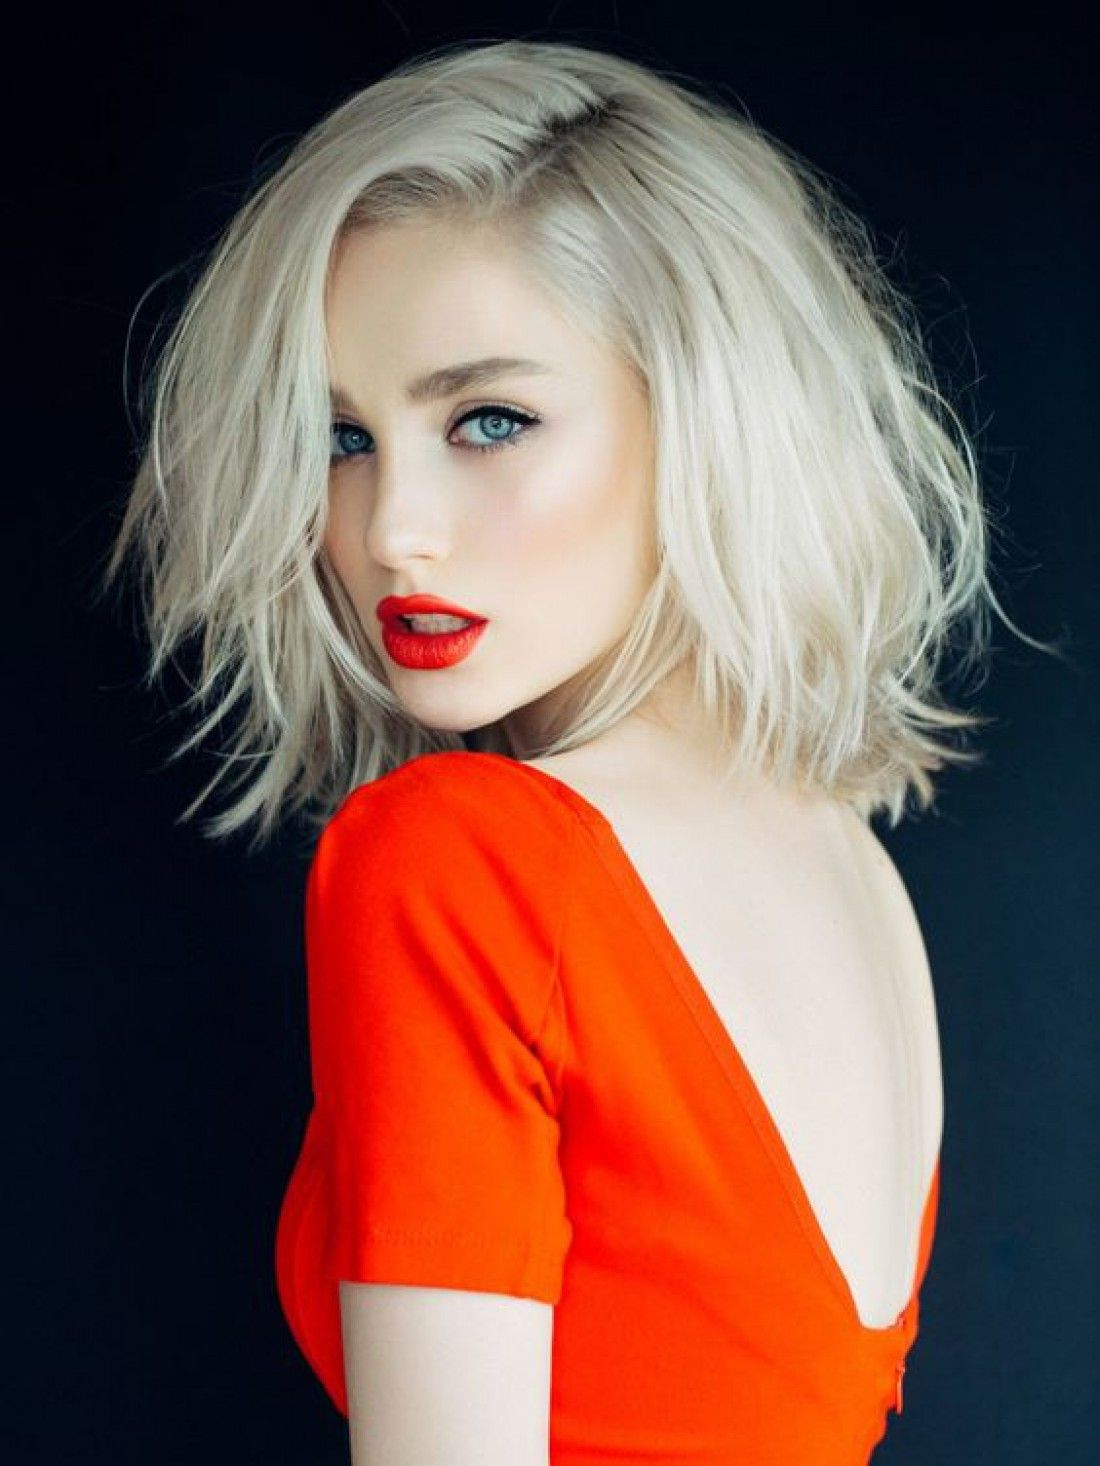 Beautiful Blonde Girl Wearing a Bright Red Top and